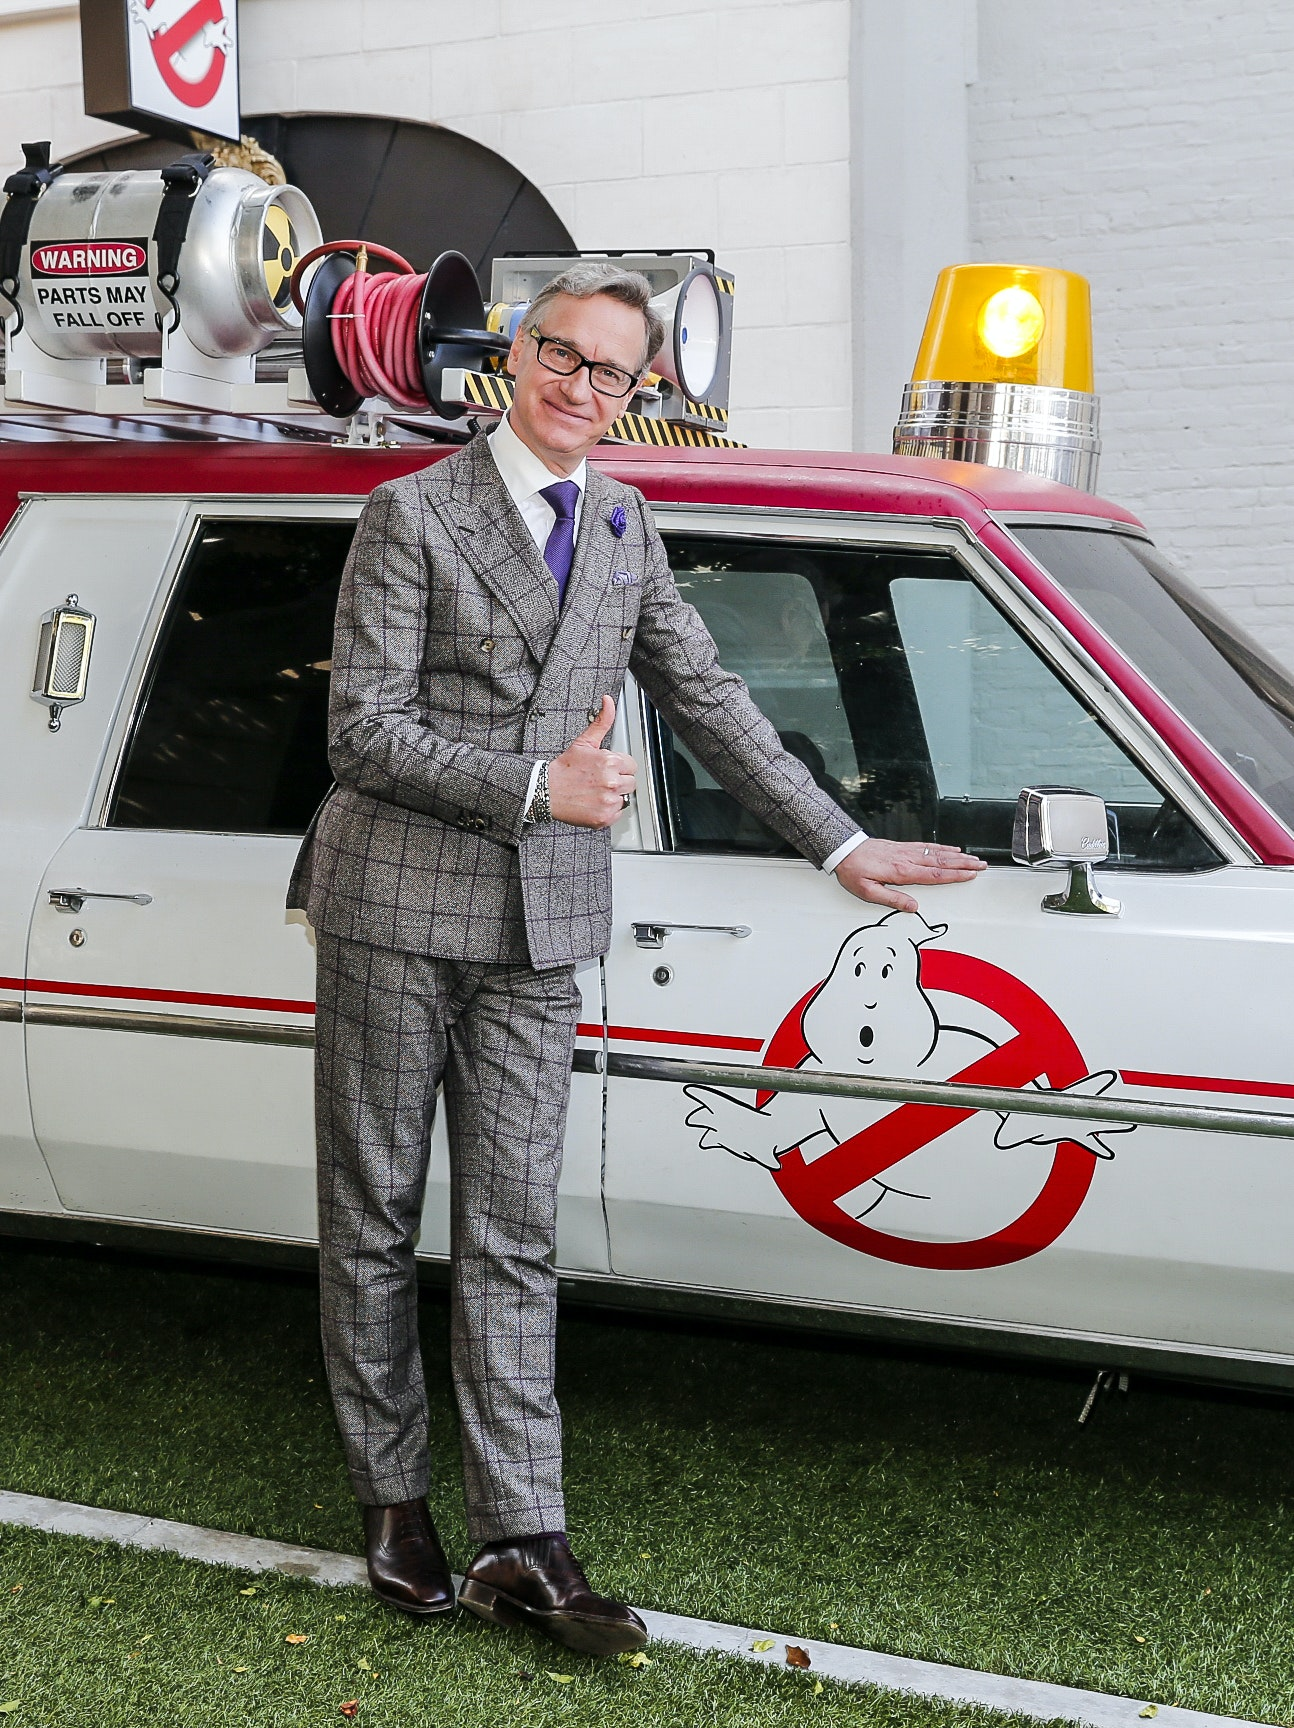 CULVER CITY, CA - MARCH 02:  Director Paul Feig poses for a photo at the Ghostbusters Fan Event at the Columbia Pictures' GHOSTBUSTERS Fan Event on the Sony Lot at Sony Pictures Studios on March 2, 2016 in Culver City, California.  (Photo by Rich Polk/Getty Images for Sony Pictures Entertainment)